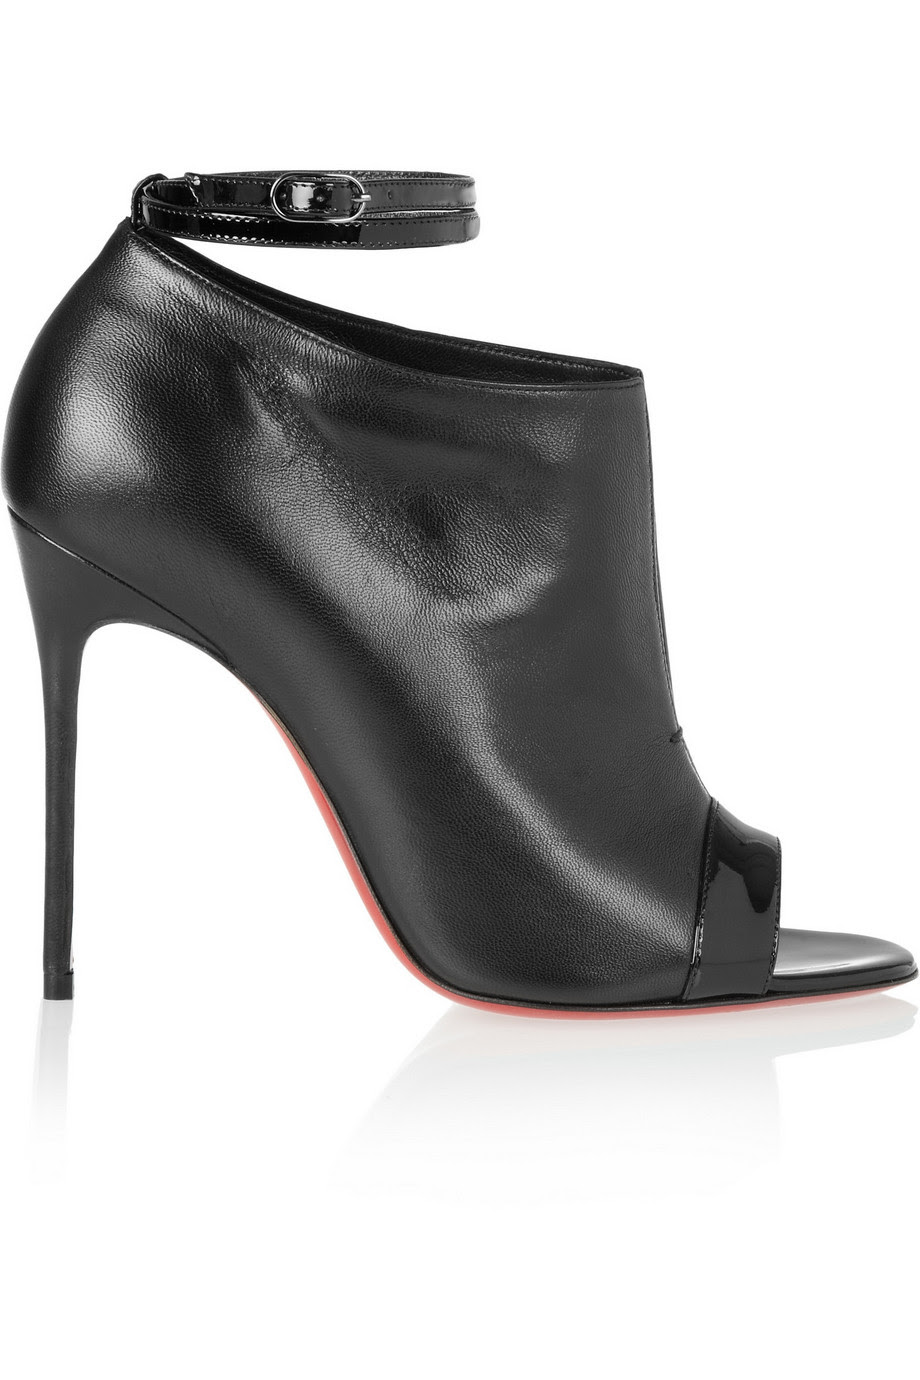 Christian Louboutin Shoes Shop Uk